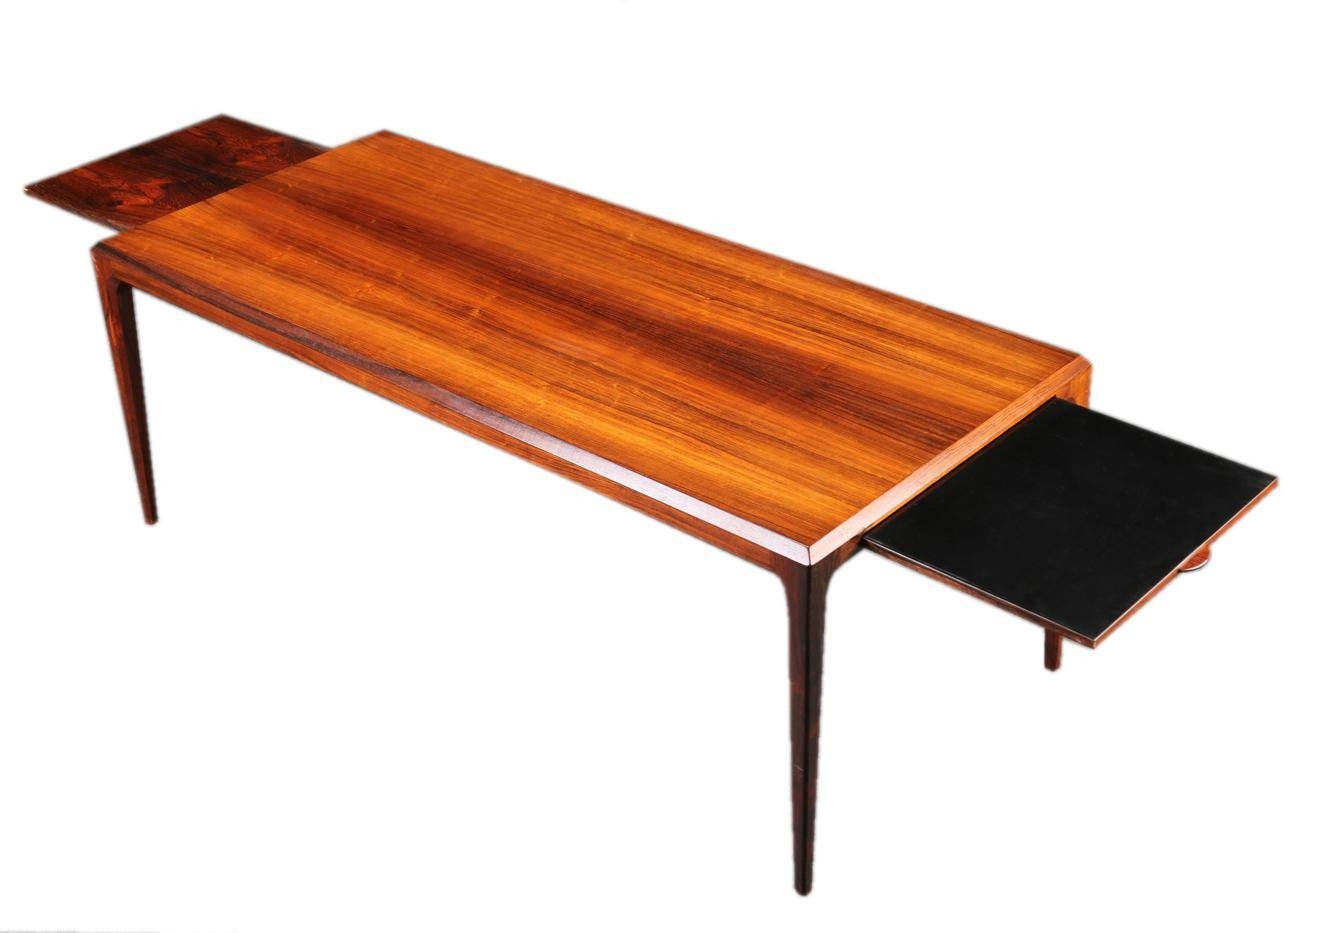 Extendable Xl Mid-Century Brazilian Rosewood Coffee Table throughout Extendable Coffee Tables (Image 12 of 30)